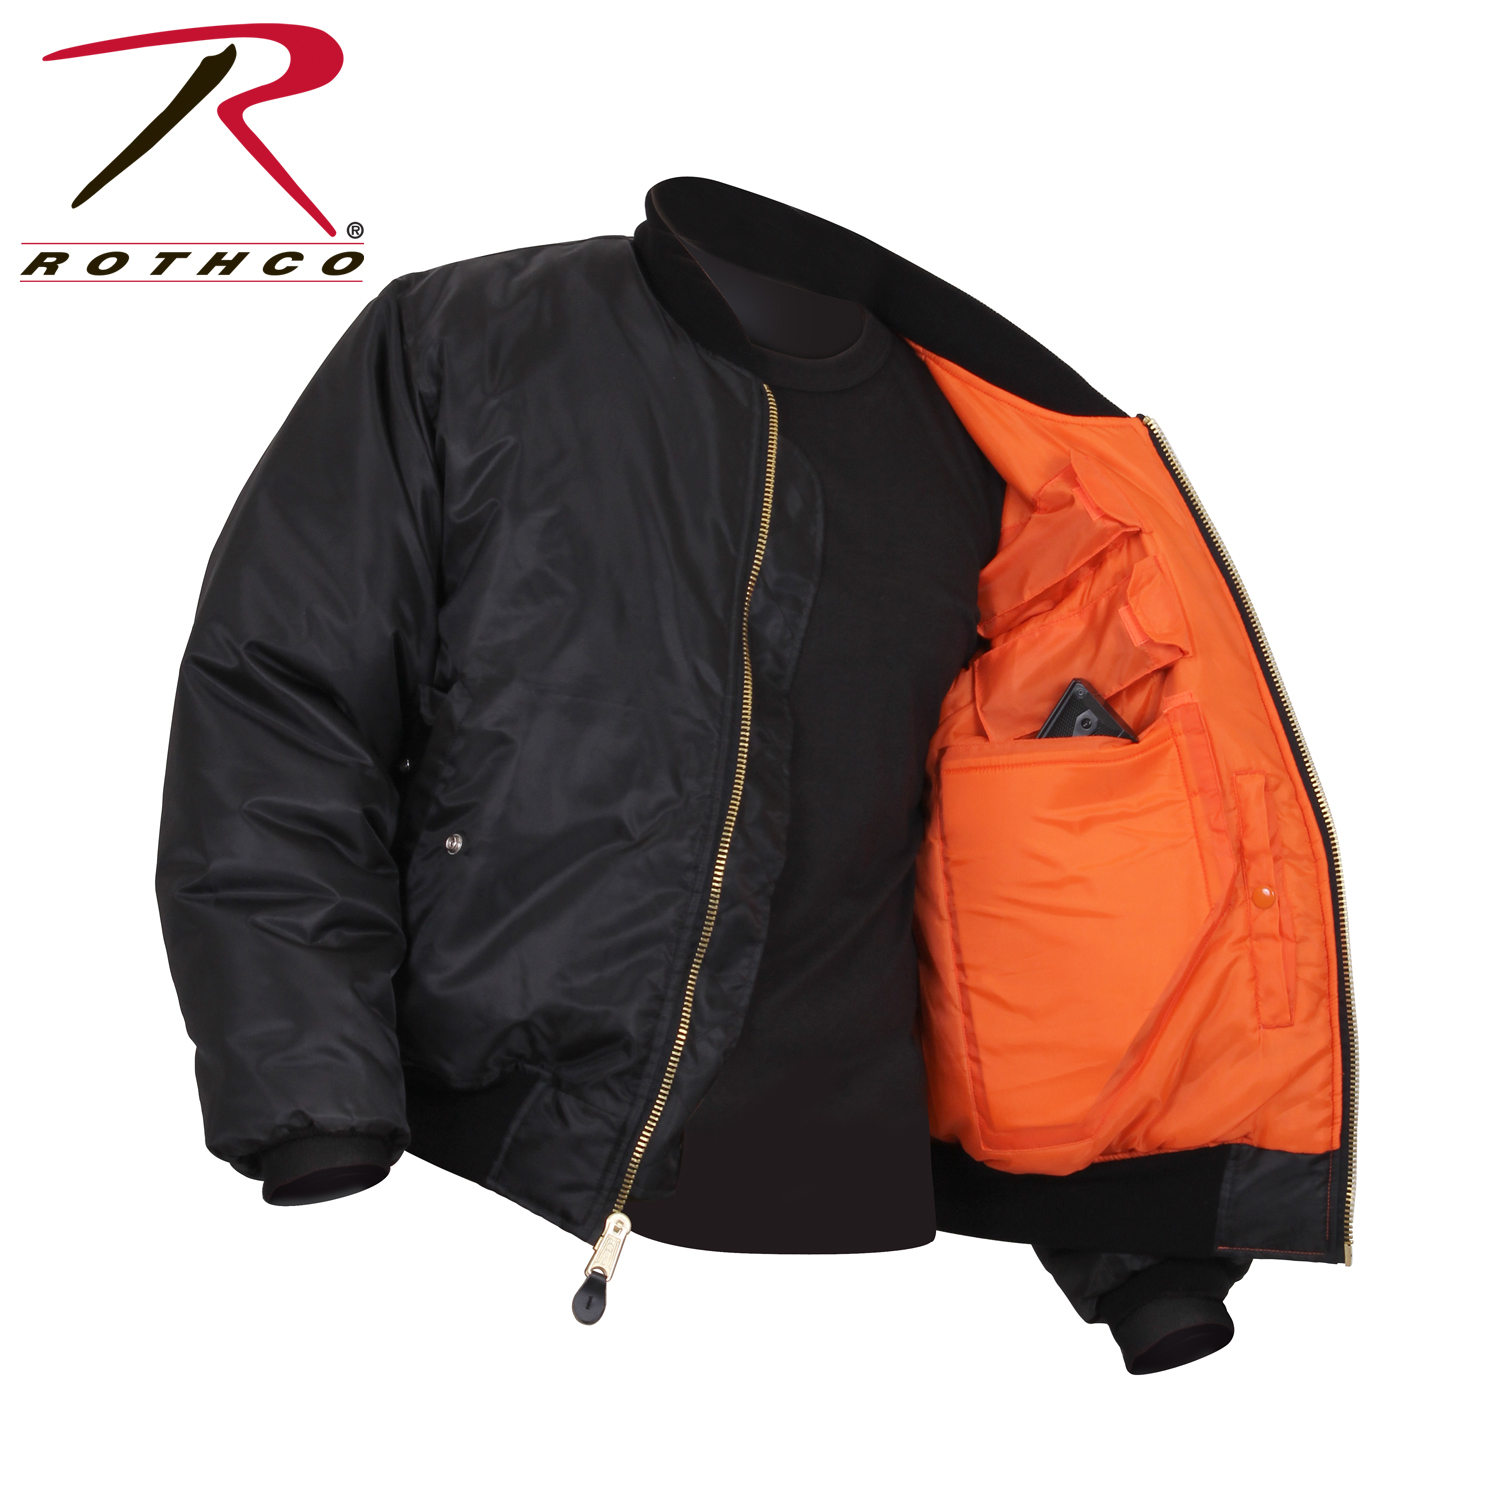 cd797d3f0 Rothco Concealed Carry MA-1 Flight Jacket